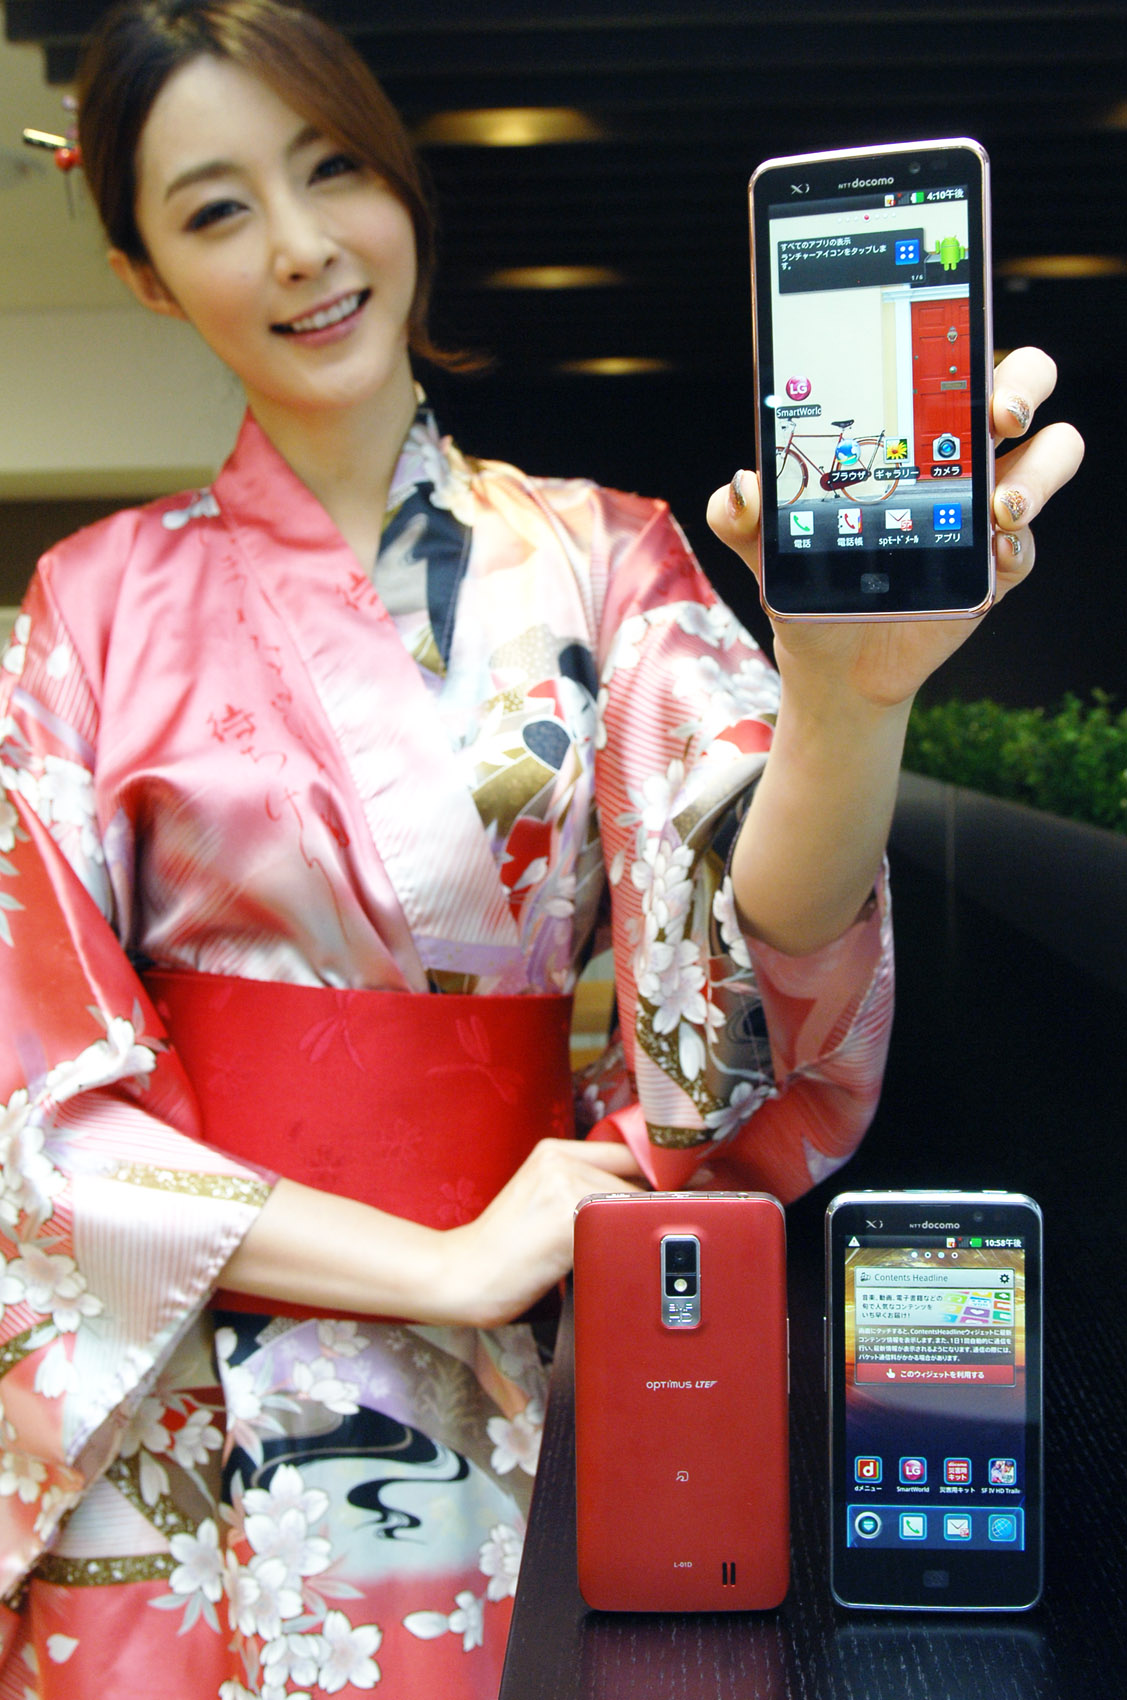 A woman in traditional Japanese clothing holds up LG Optimus LTE and shows its front view, while two LG Optimus LTEs displaying its front and back are displayed in front of her